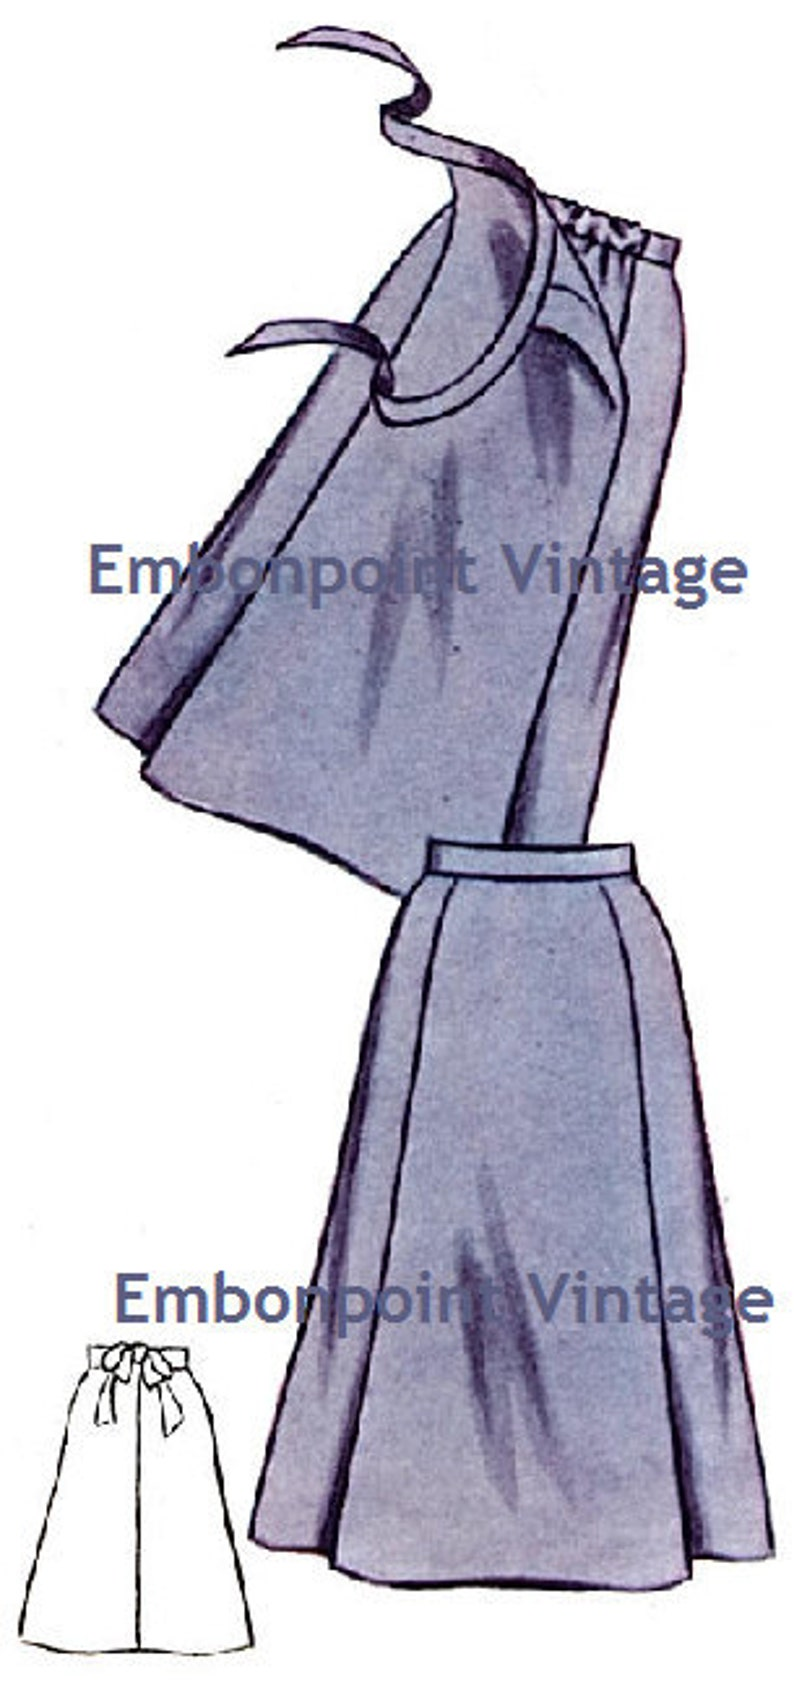 Vintage Maternity Clothes History  1950s Maternity Skirt Pattern - PDF - Pattern No 72 Ruth Skirt $6.33 AT vintagedancer.com